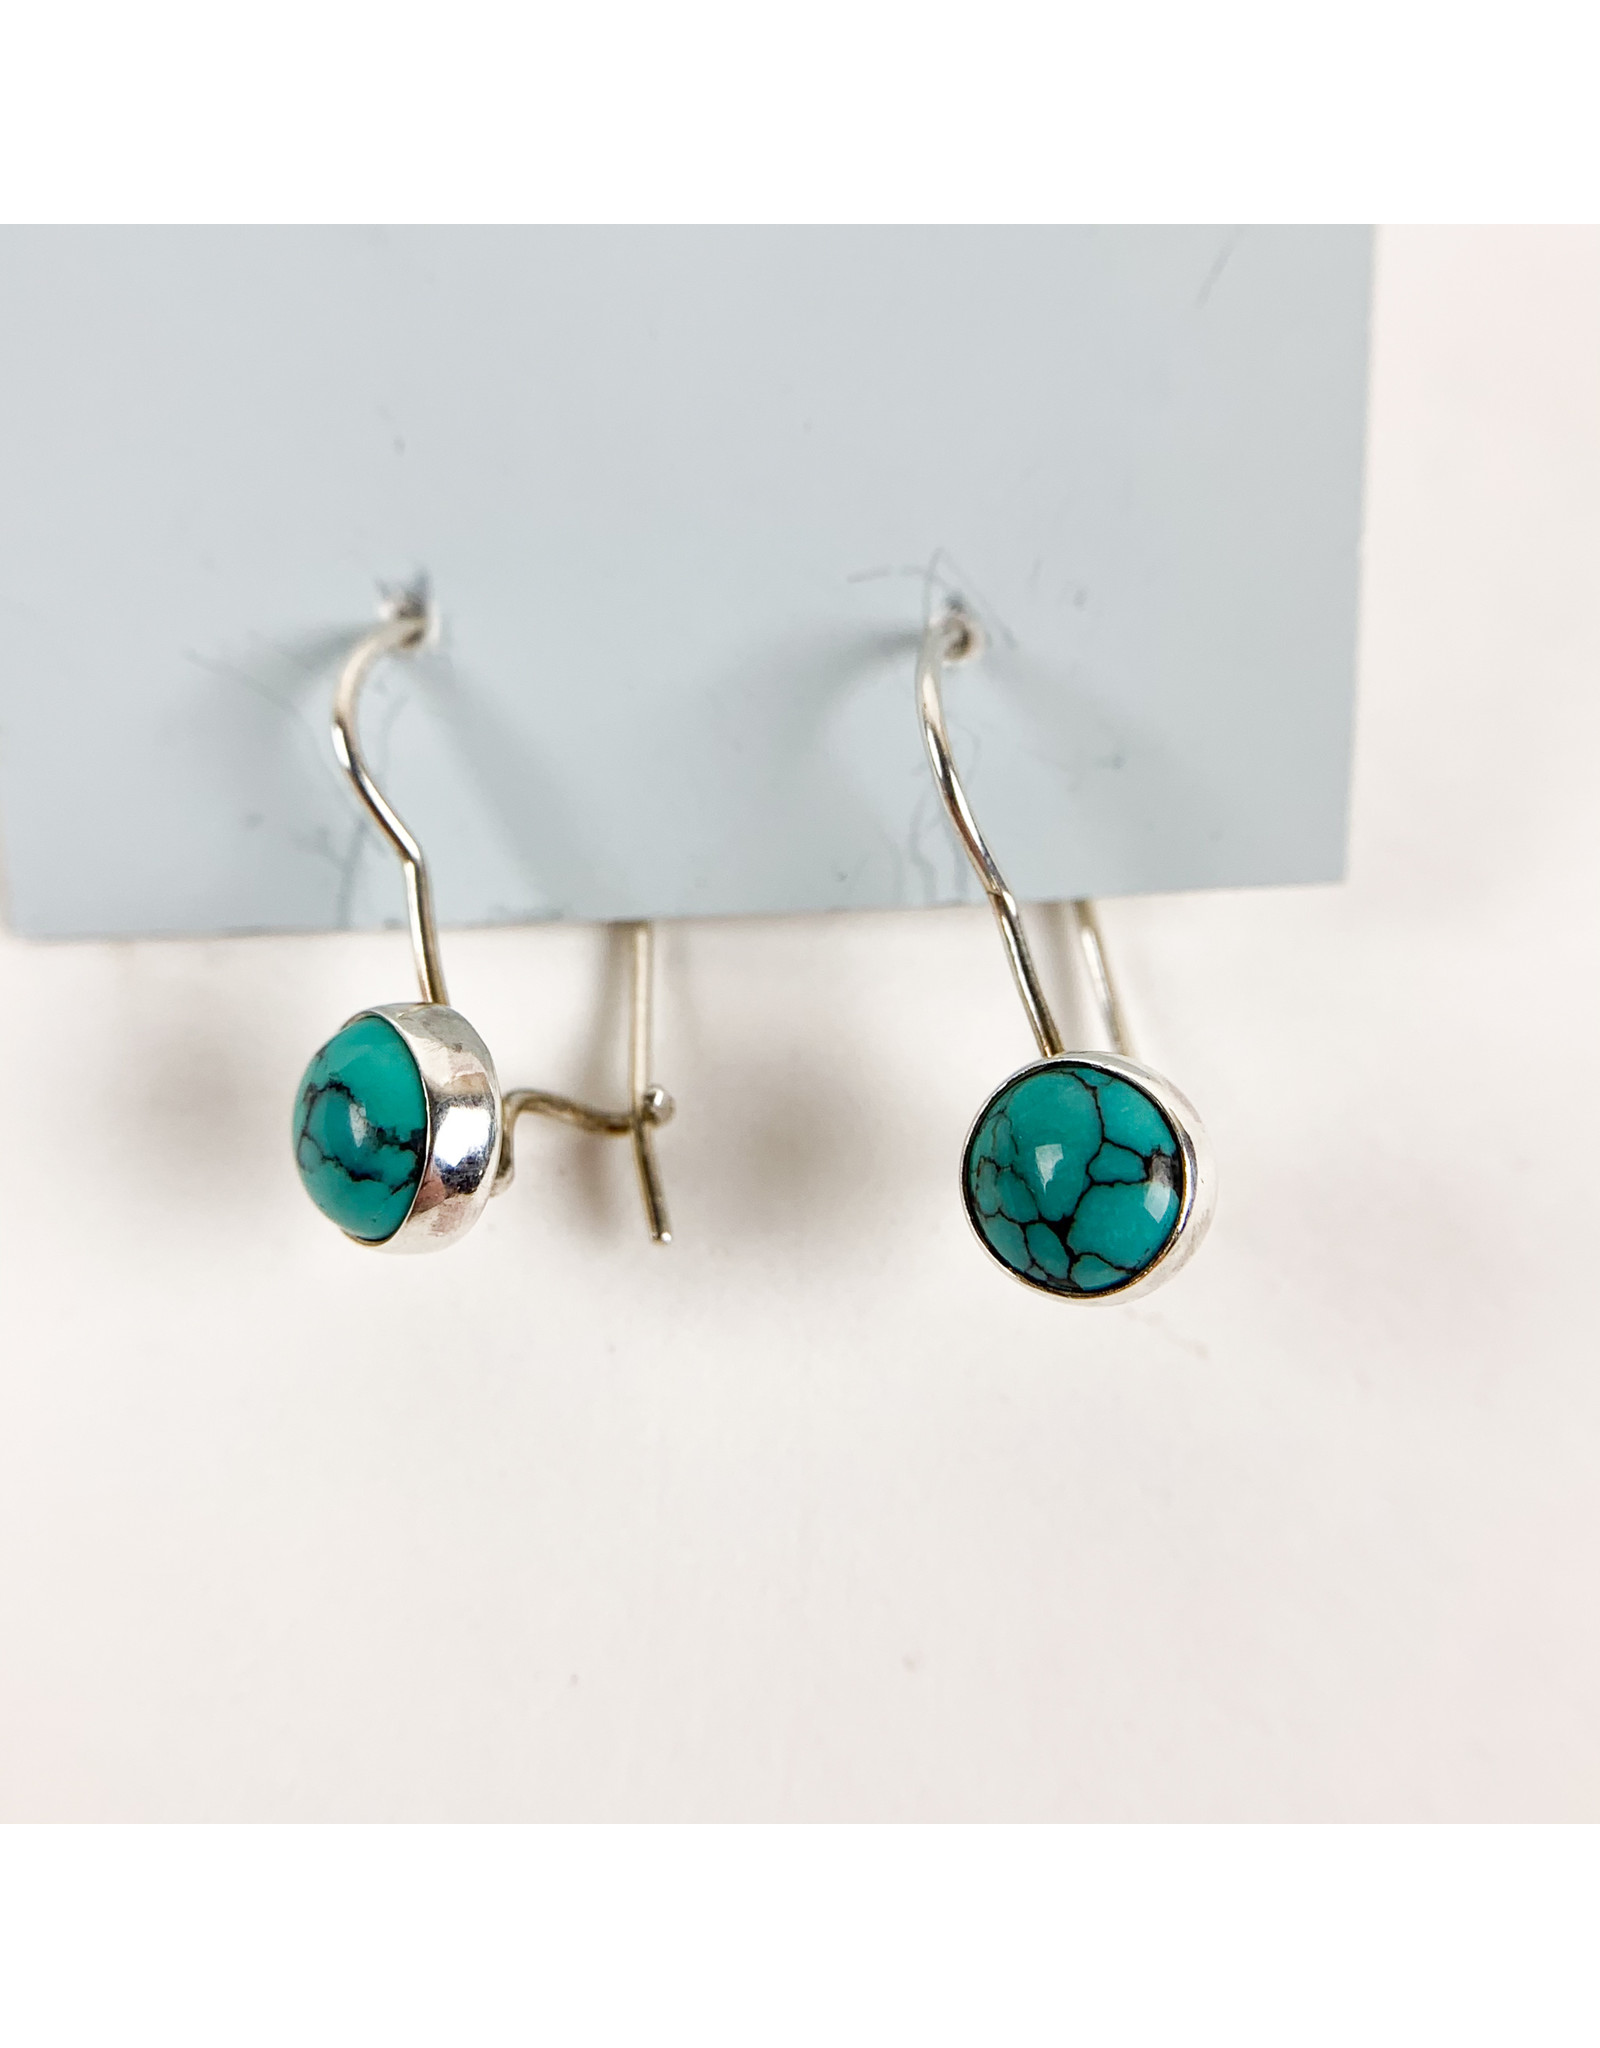 Camille Hempel Jewelry-Consignment CHE26 Turquoise Earrings French Hooks